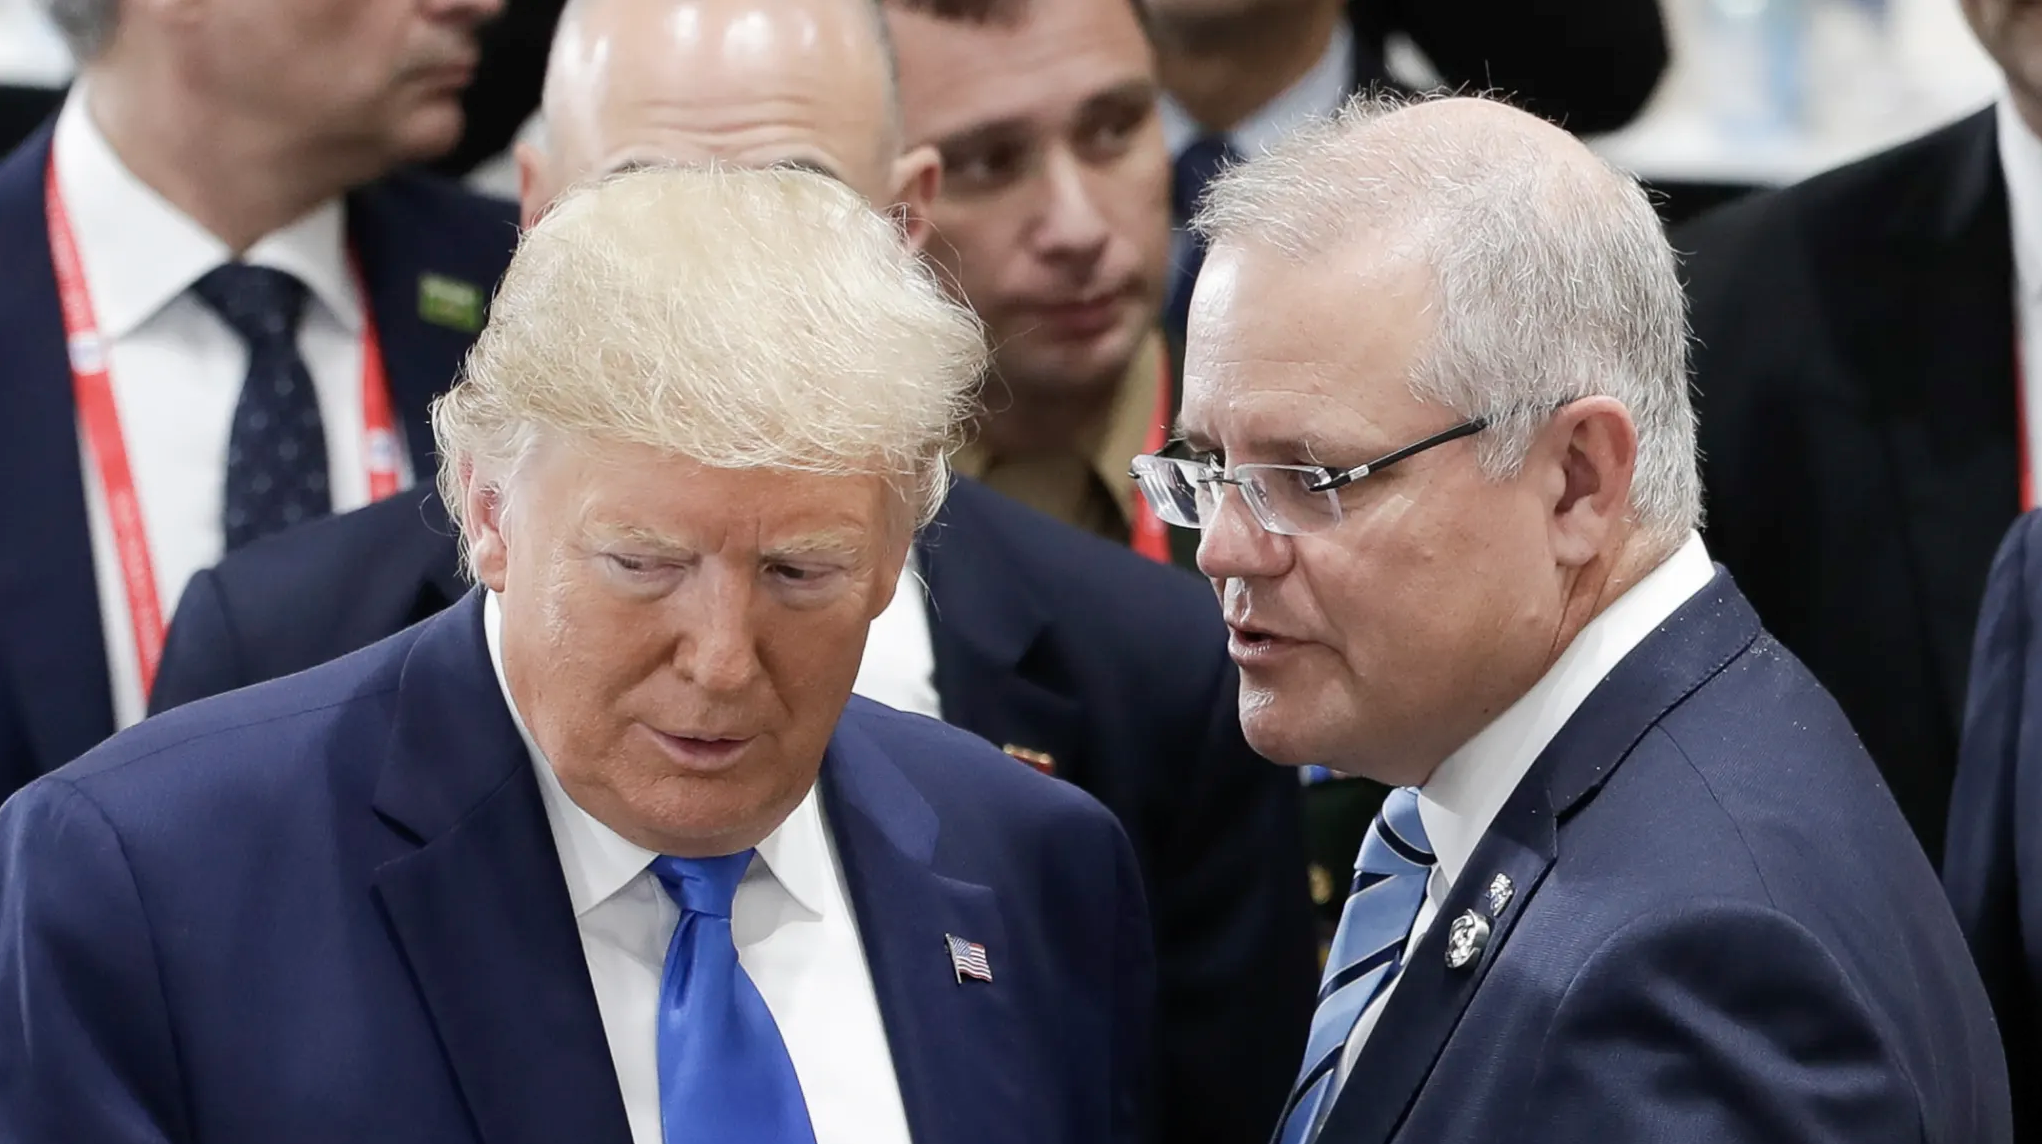 Donald Trump and Scott Morrison at the G20 Summit in Japan. Photo: Alex Ellinghausen